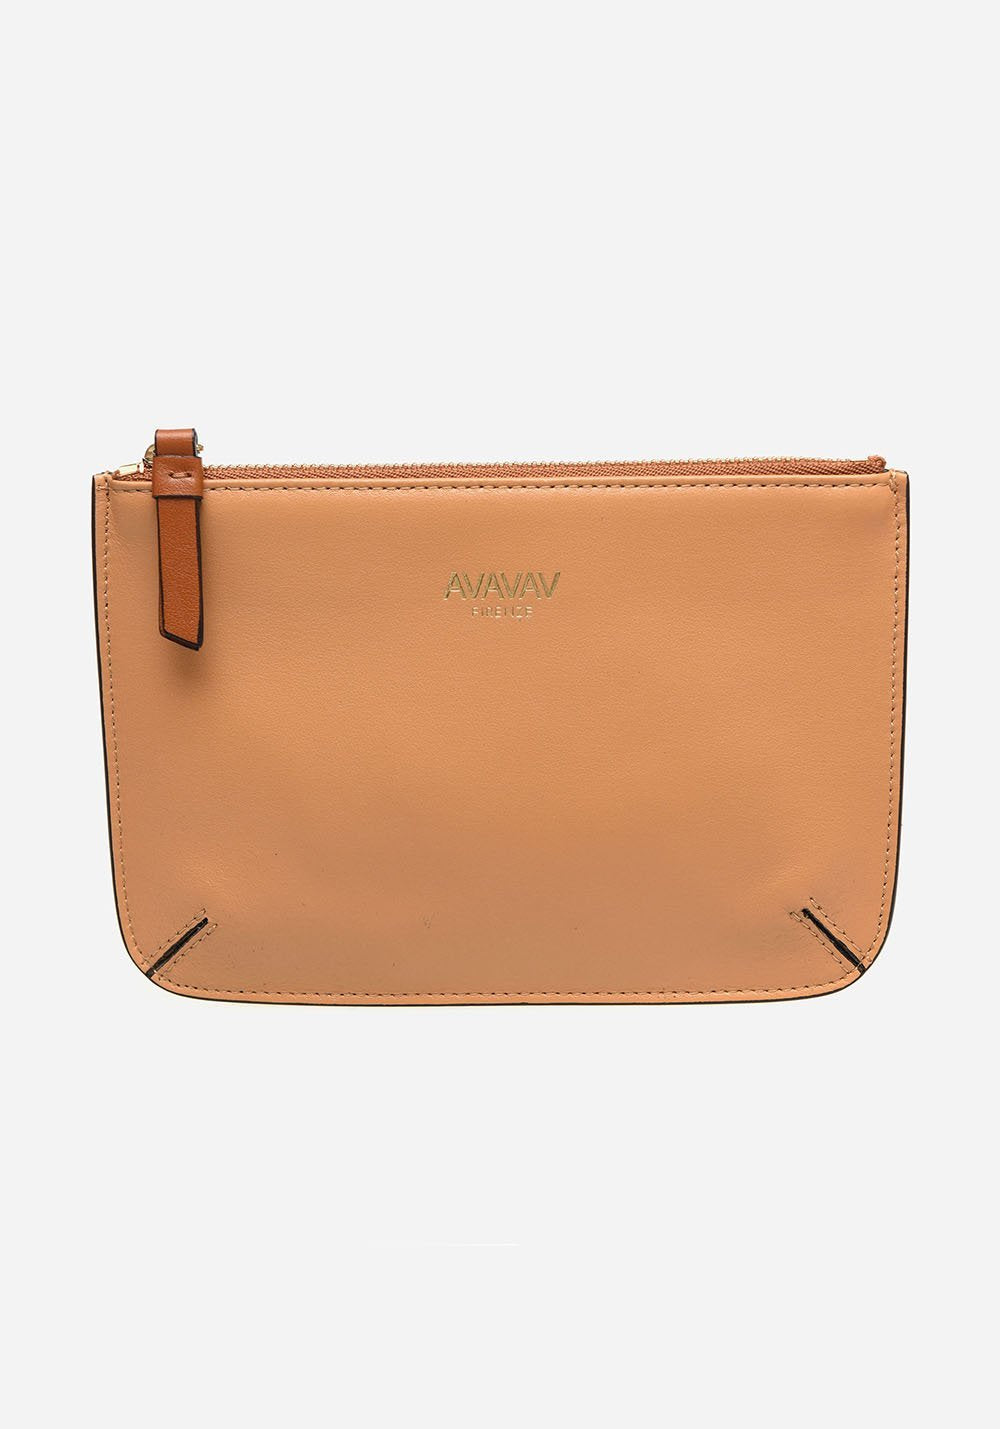 Small Pouch in Camel - AVAVAV-Small Pouch in Camel